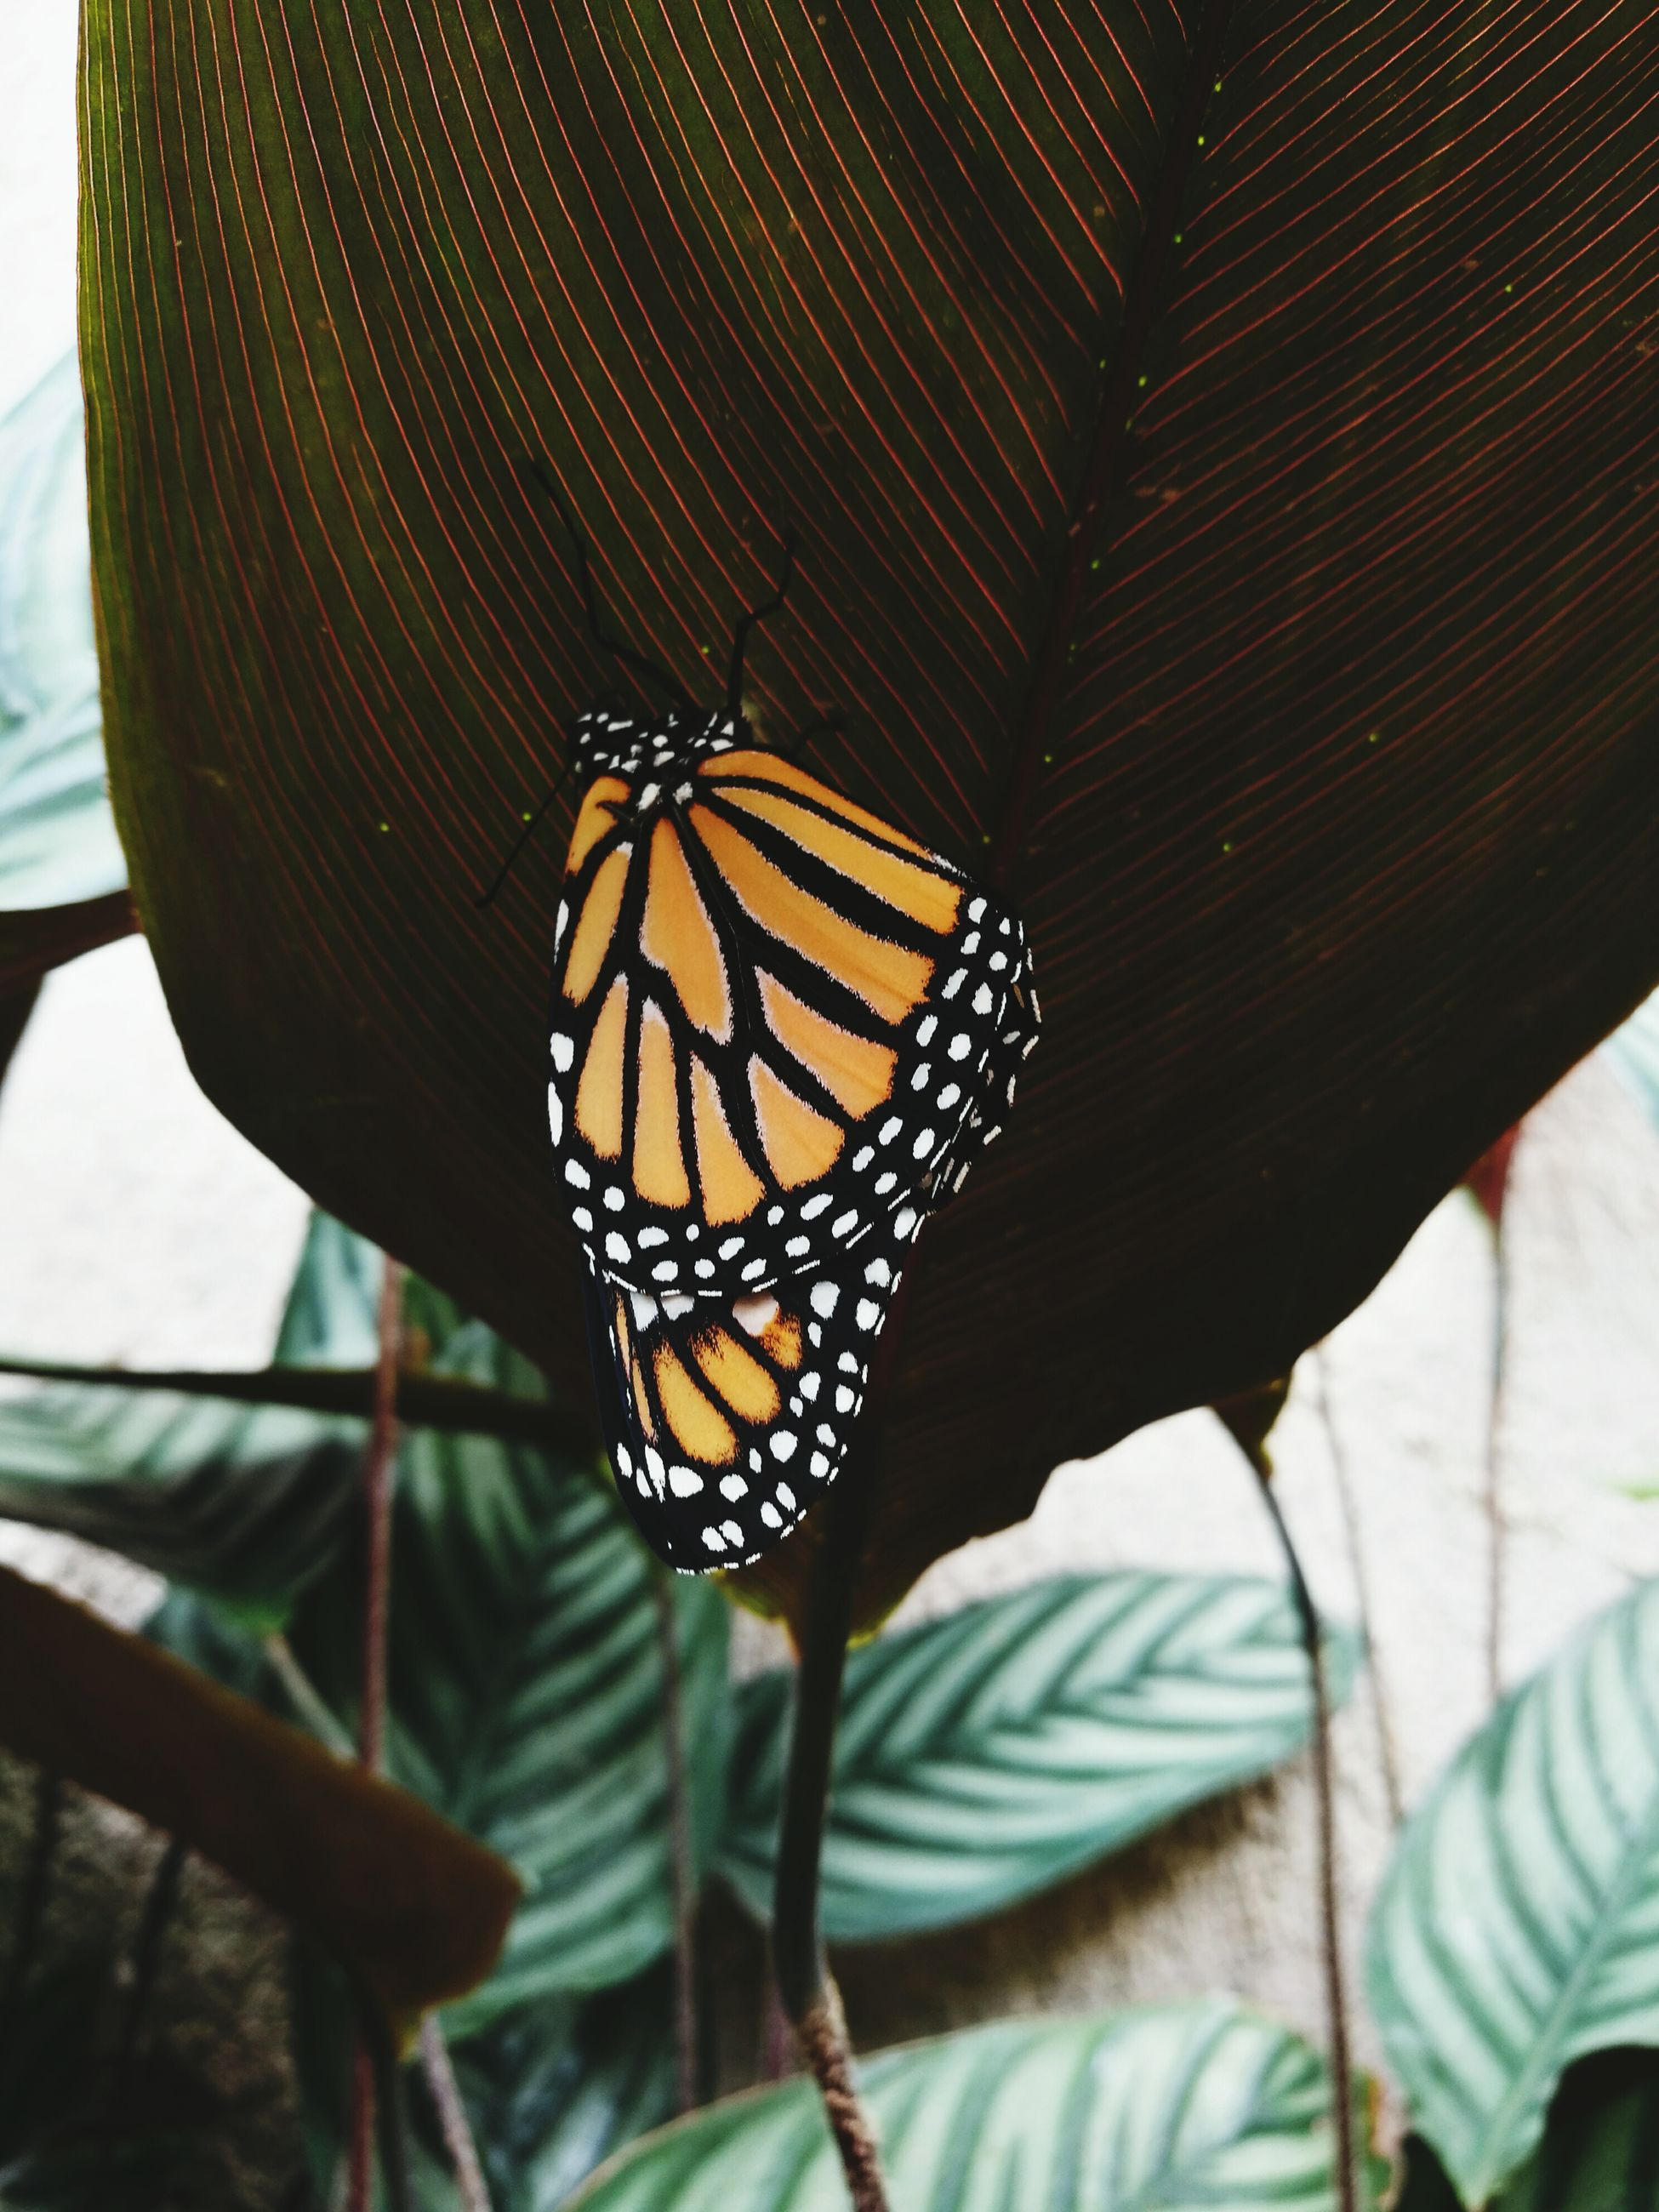 one animal, insect, close-up, animal themes, butterfly, focus on foreground, beauty, green, no people, beauty in nature